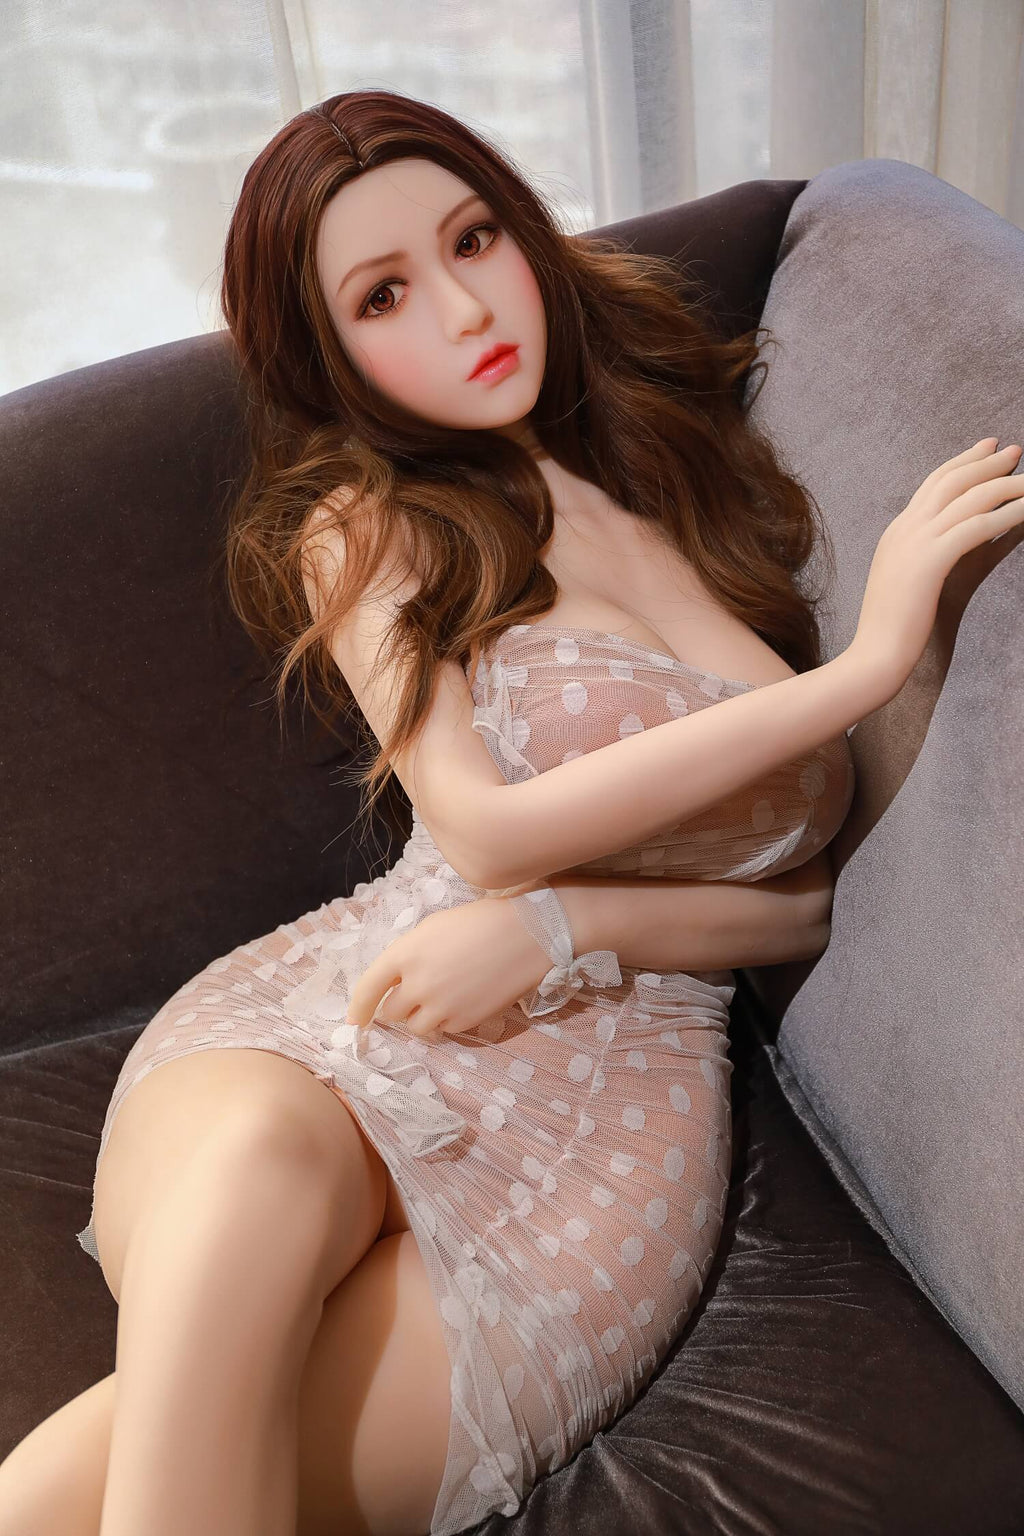 Cylvia Sex Doll - Big Chest Love Doll